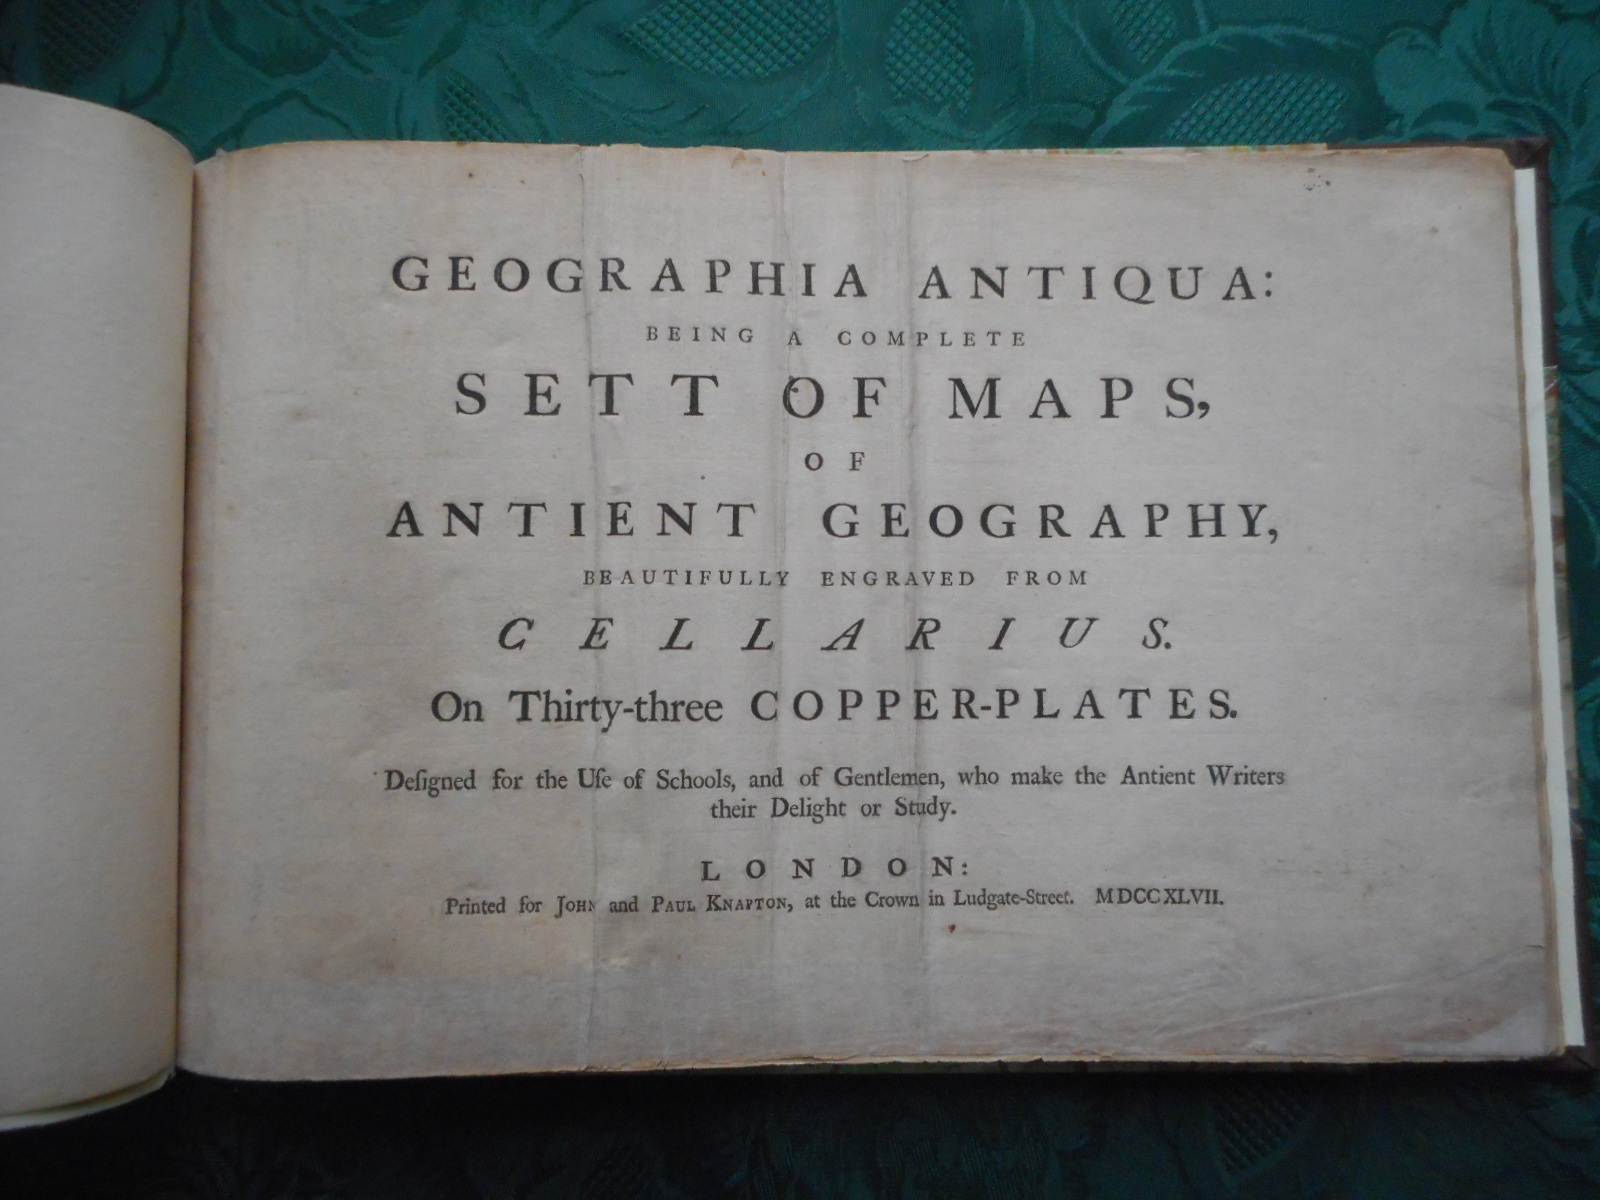 Image for Geographia Antiqua: Being a Complete Set of Maps of Ancient Geography, Beautifully Engraved from Cellarius, on Thirty-Three Copper-Plates. Designed for the Use of Schools, and of Gentlemen Who Make the Ancient Writers Their Delight or Study.